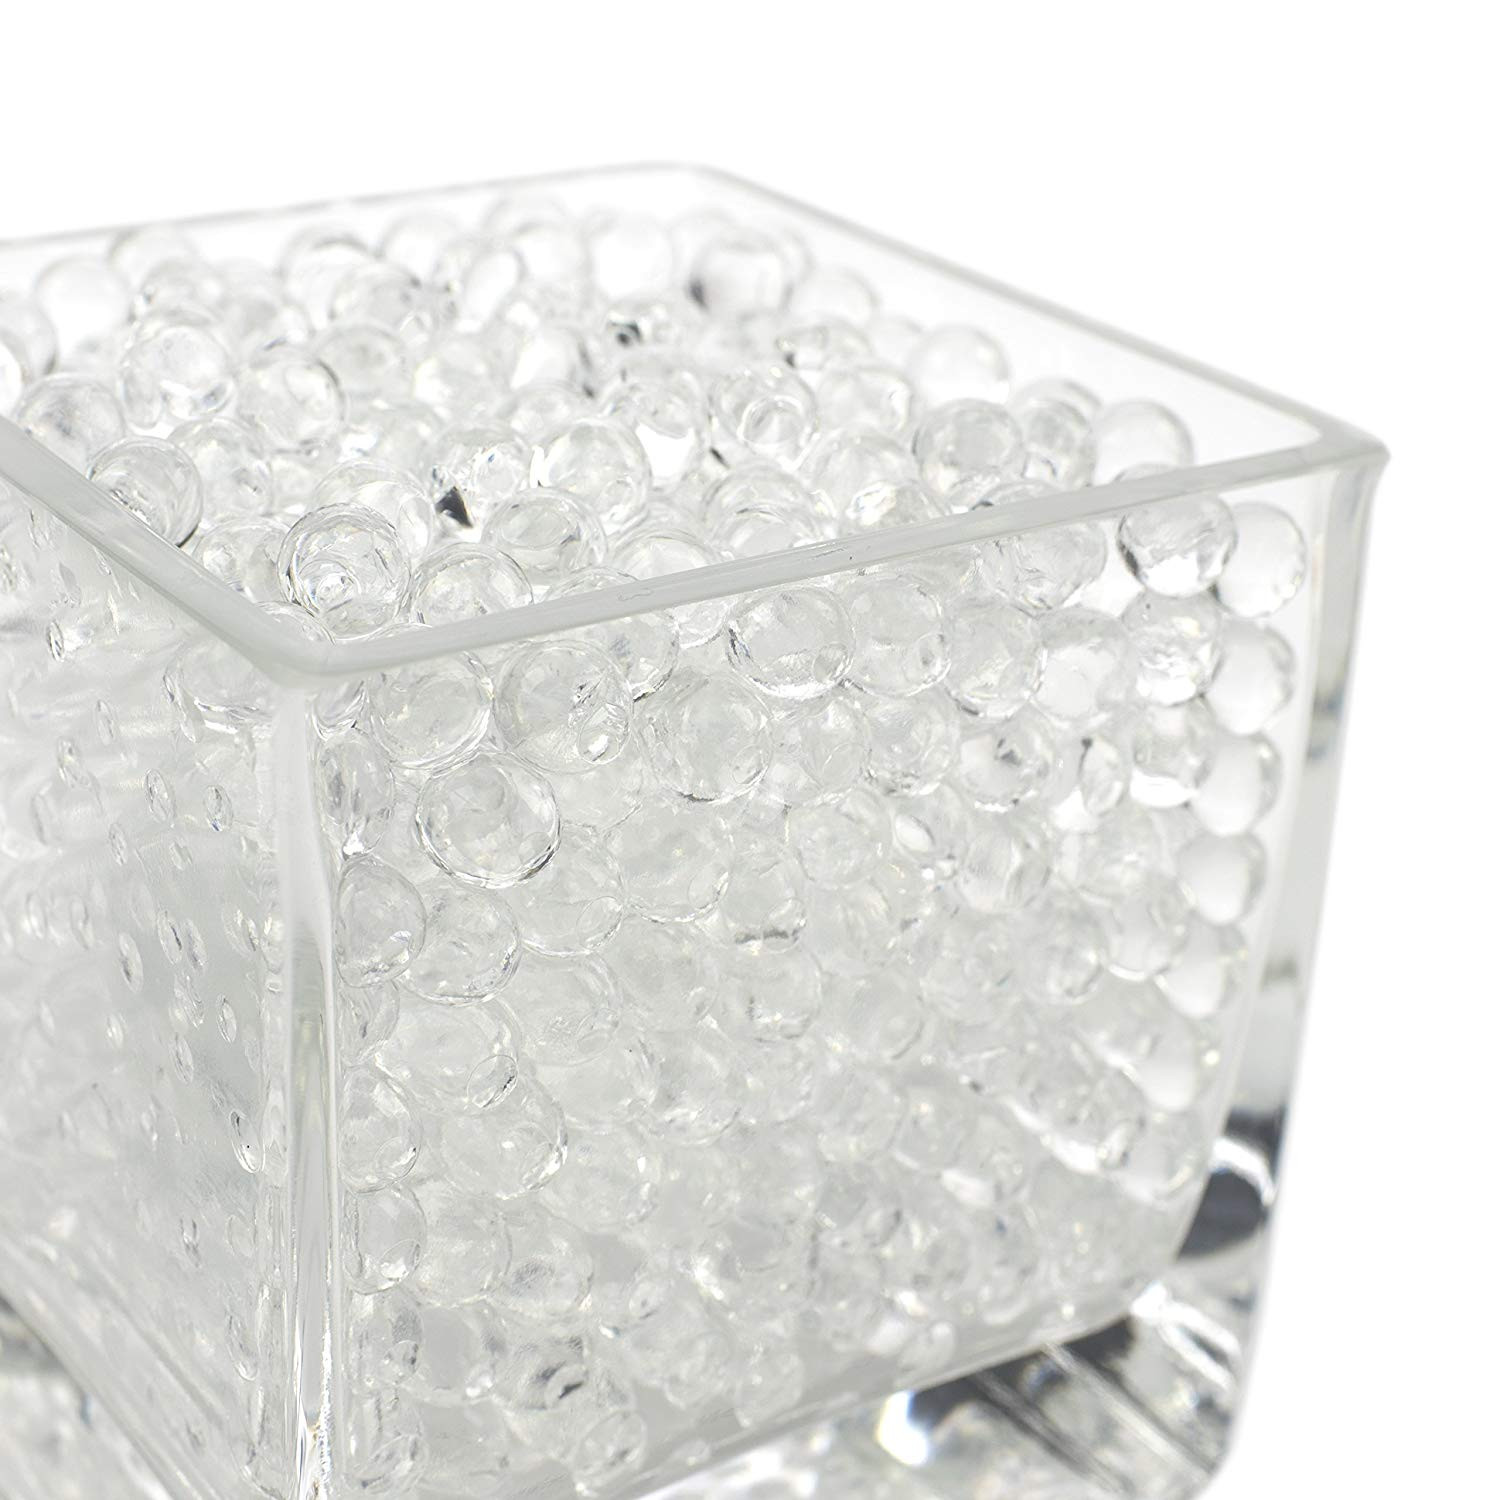 loose pearls vase filler wholesale of amazon com magic beadz clear jelly water beads transparent gel pertaining to amazon com magic beadz clear jelly water beads transparent gel pearls vase filler wedding centerpiece candles flower arrangements over 20000